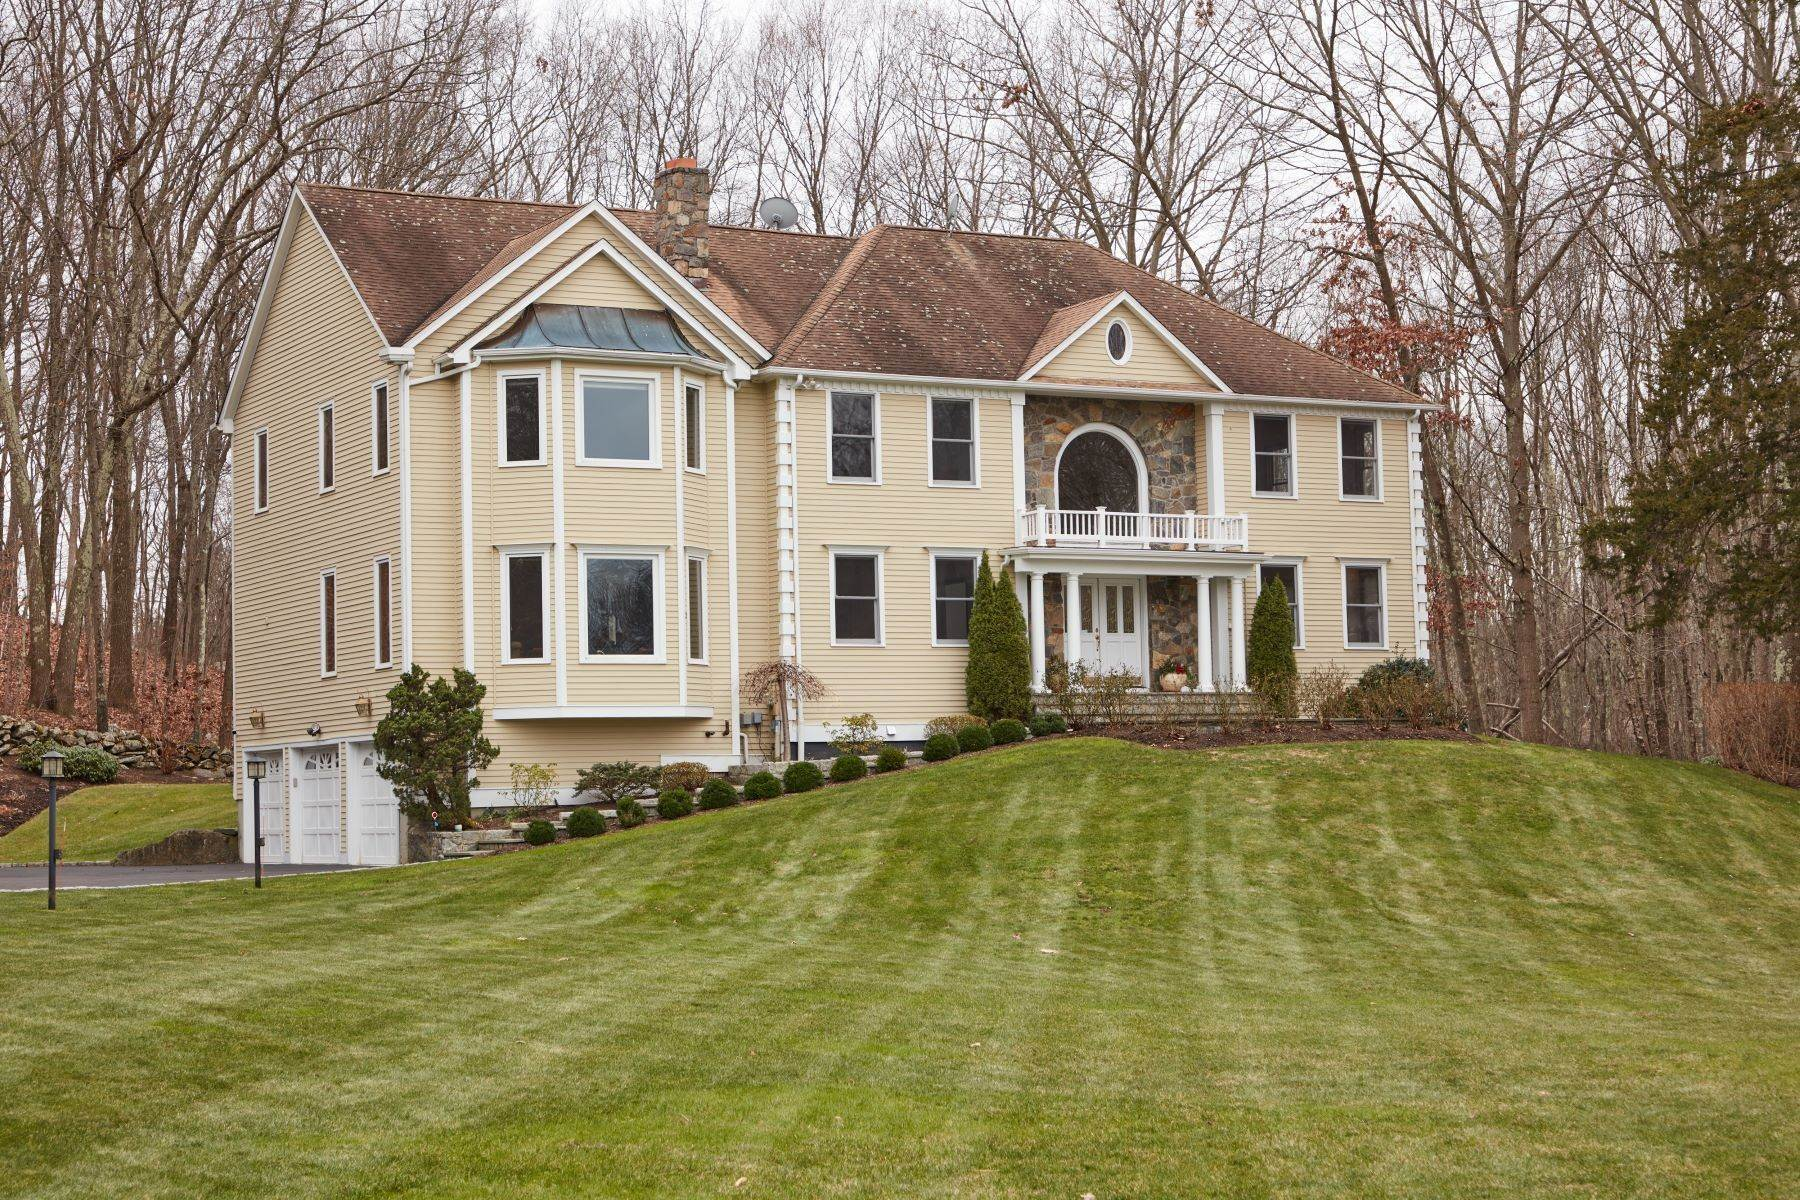 Single Family Homes for Sale at Expansive Waterfront Colonial 2 May Court Monroe, Connecticut 06468 United States